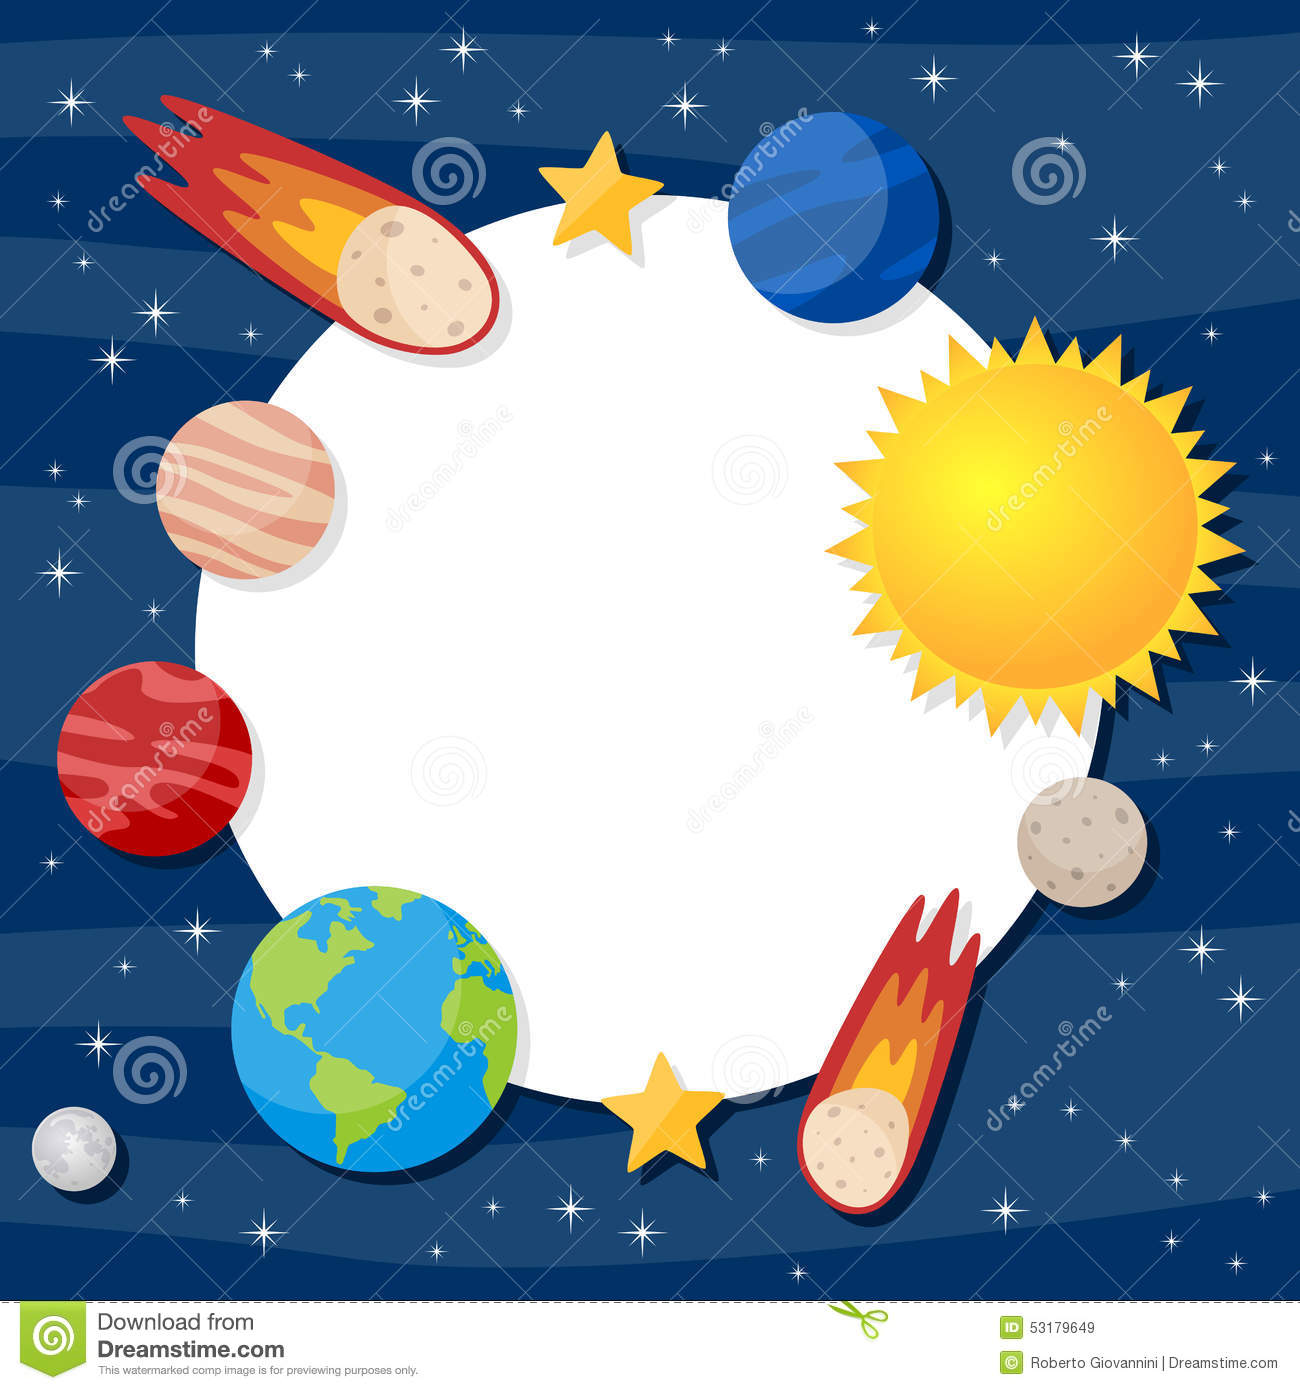 Solar System Planets Photo Frame Stock Vector - Illustration of ...